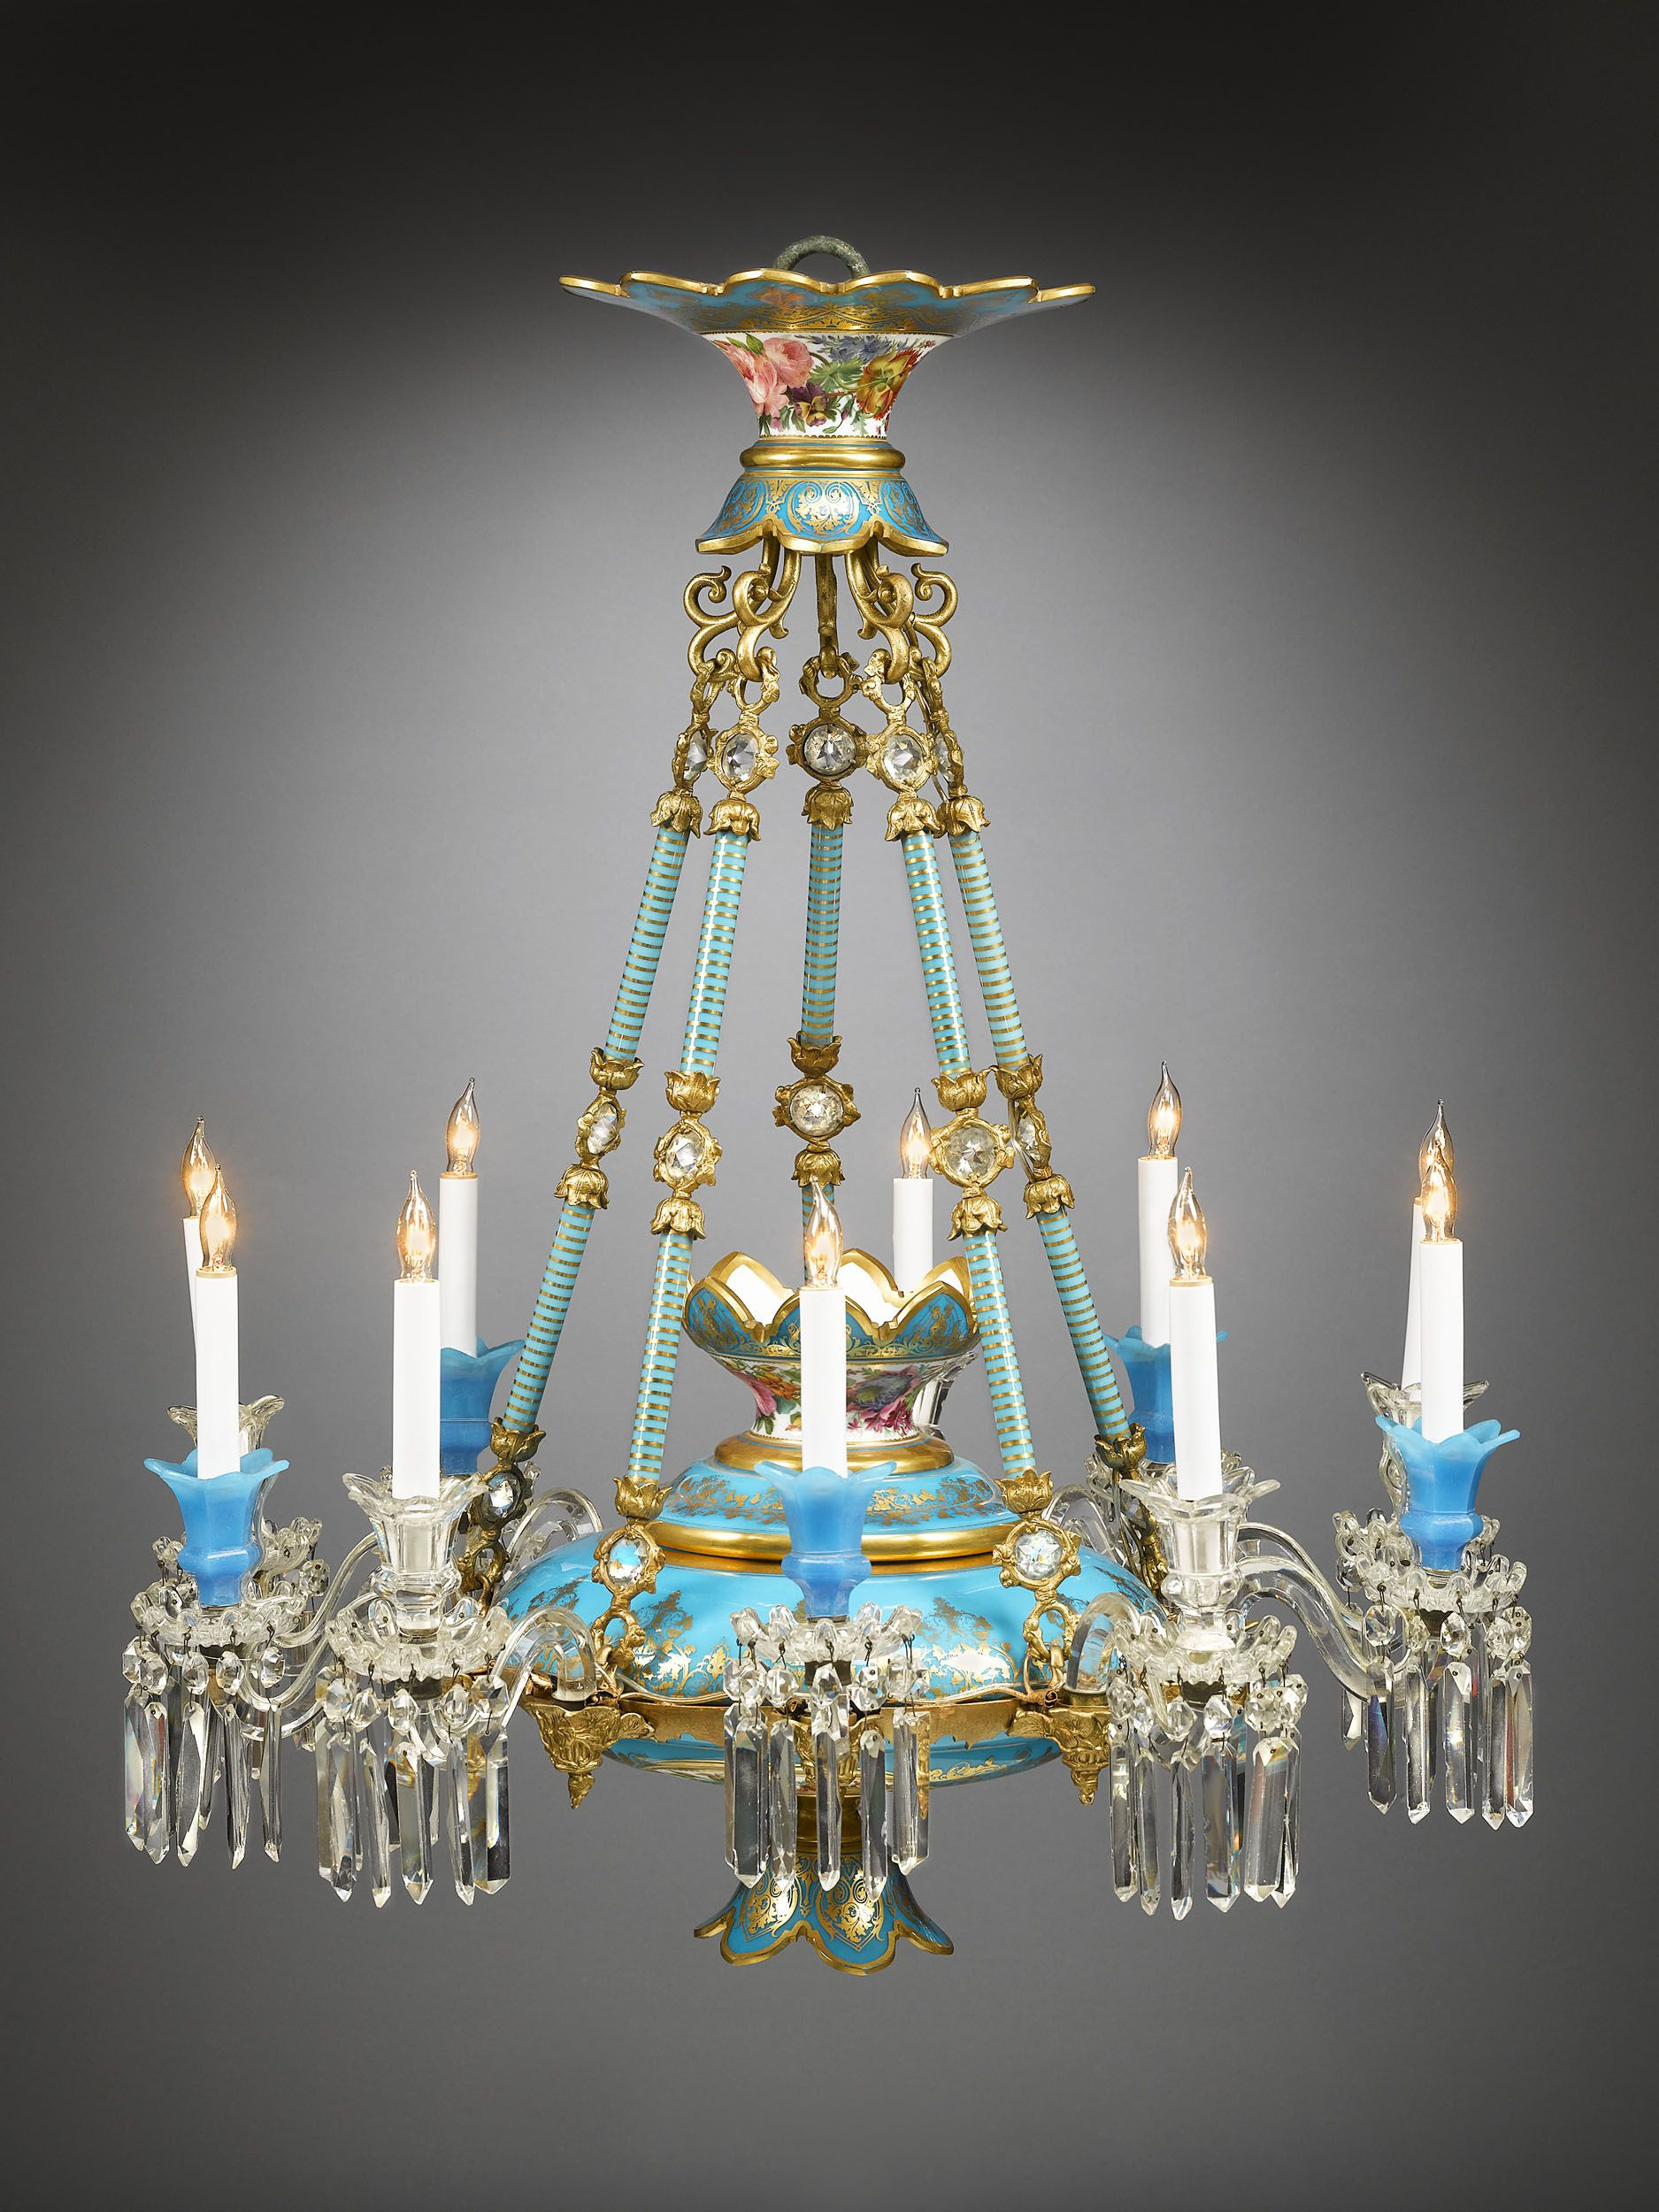 Chandelier by baccarat features opaline glass cut crystal and chandelier by baccarat features opaline glass cut crystal and ornate dor bronze this highly ornate aloadofball Choice Image